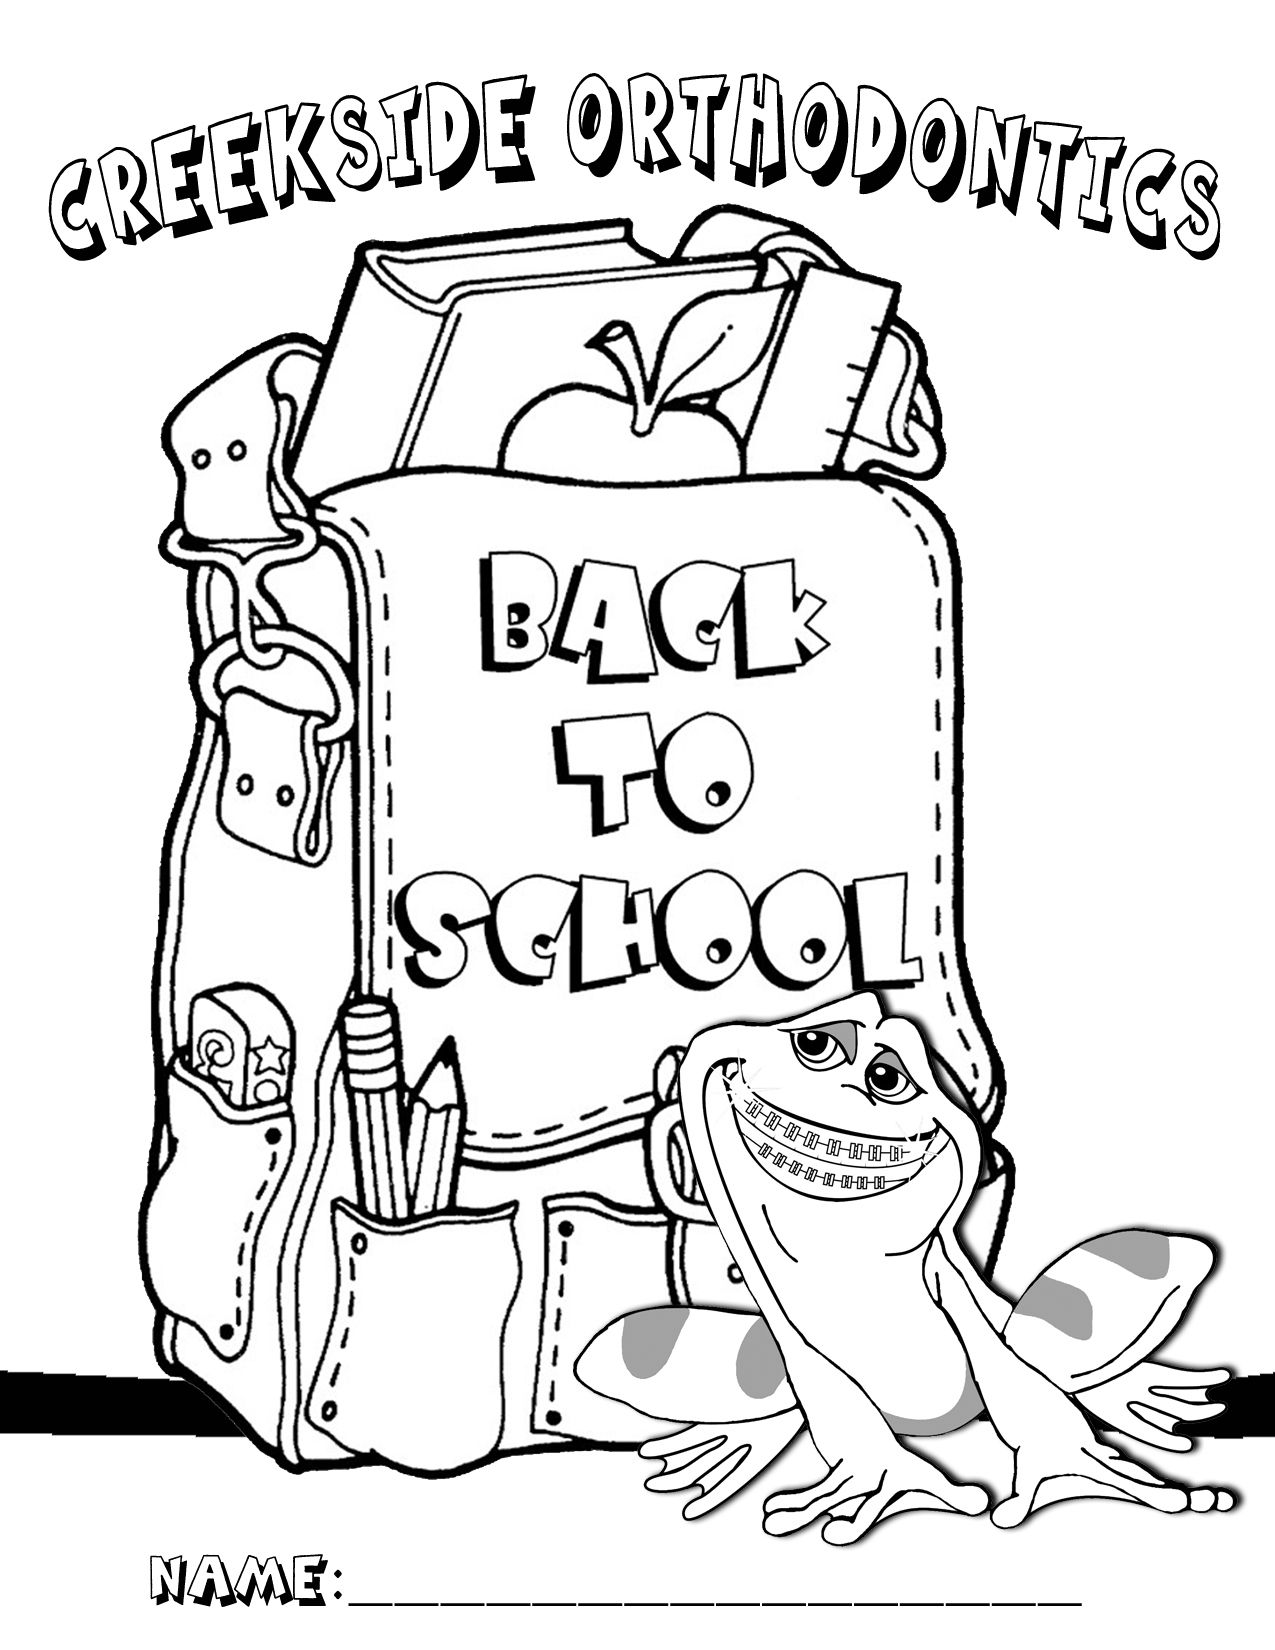 Creekside Orthodontics Coloring Pages School Preschool School